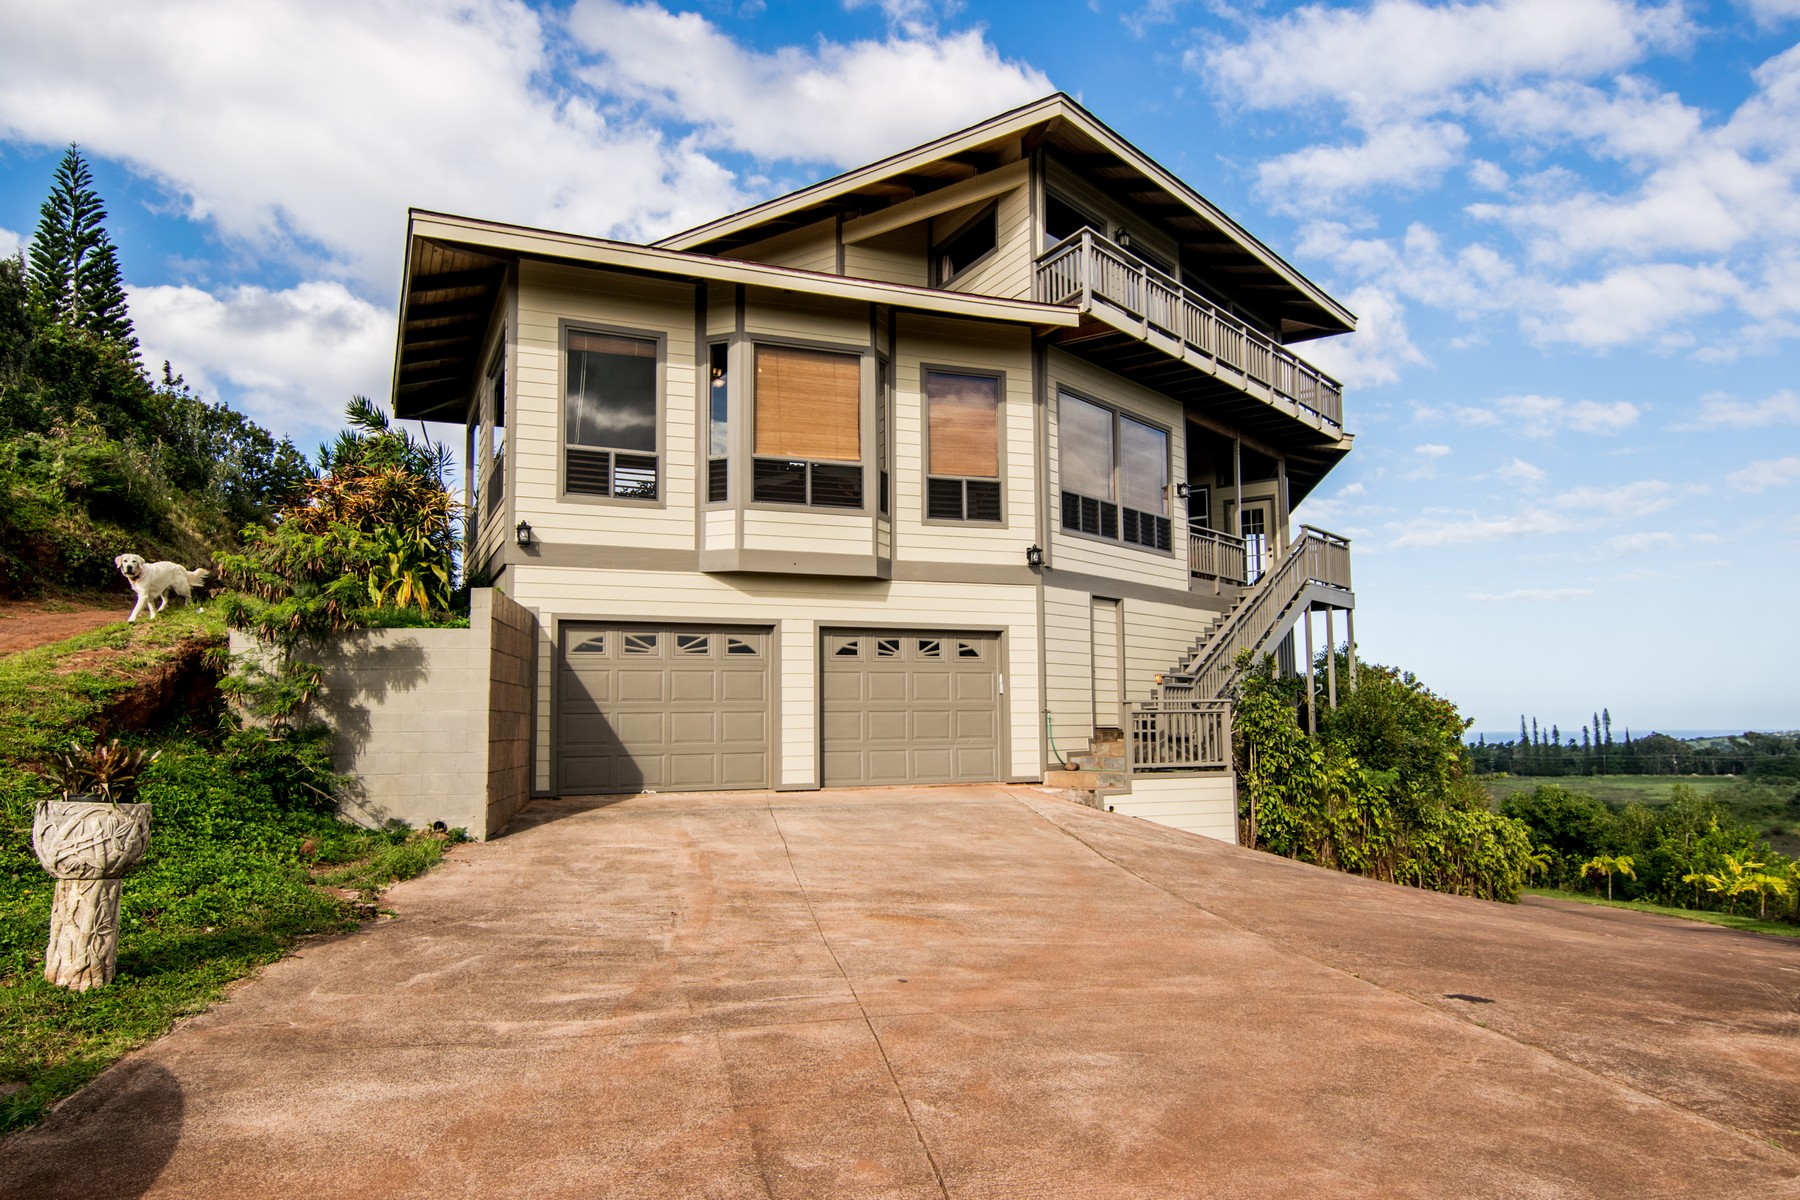 Property For Sale at Unbelievable Views in Haiku Hills!